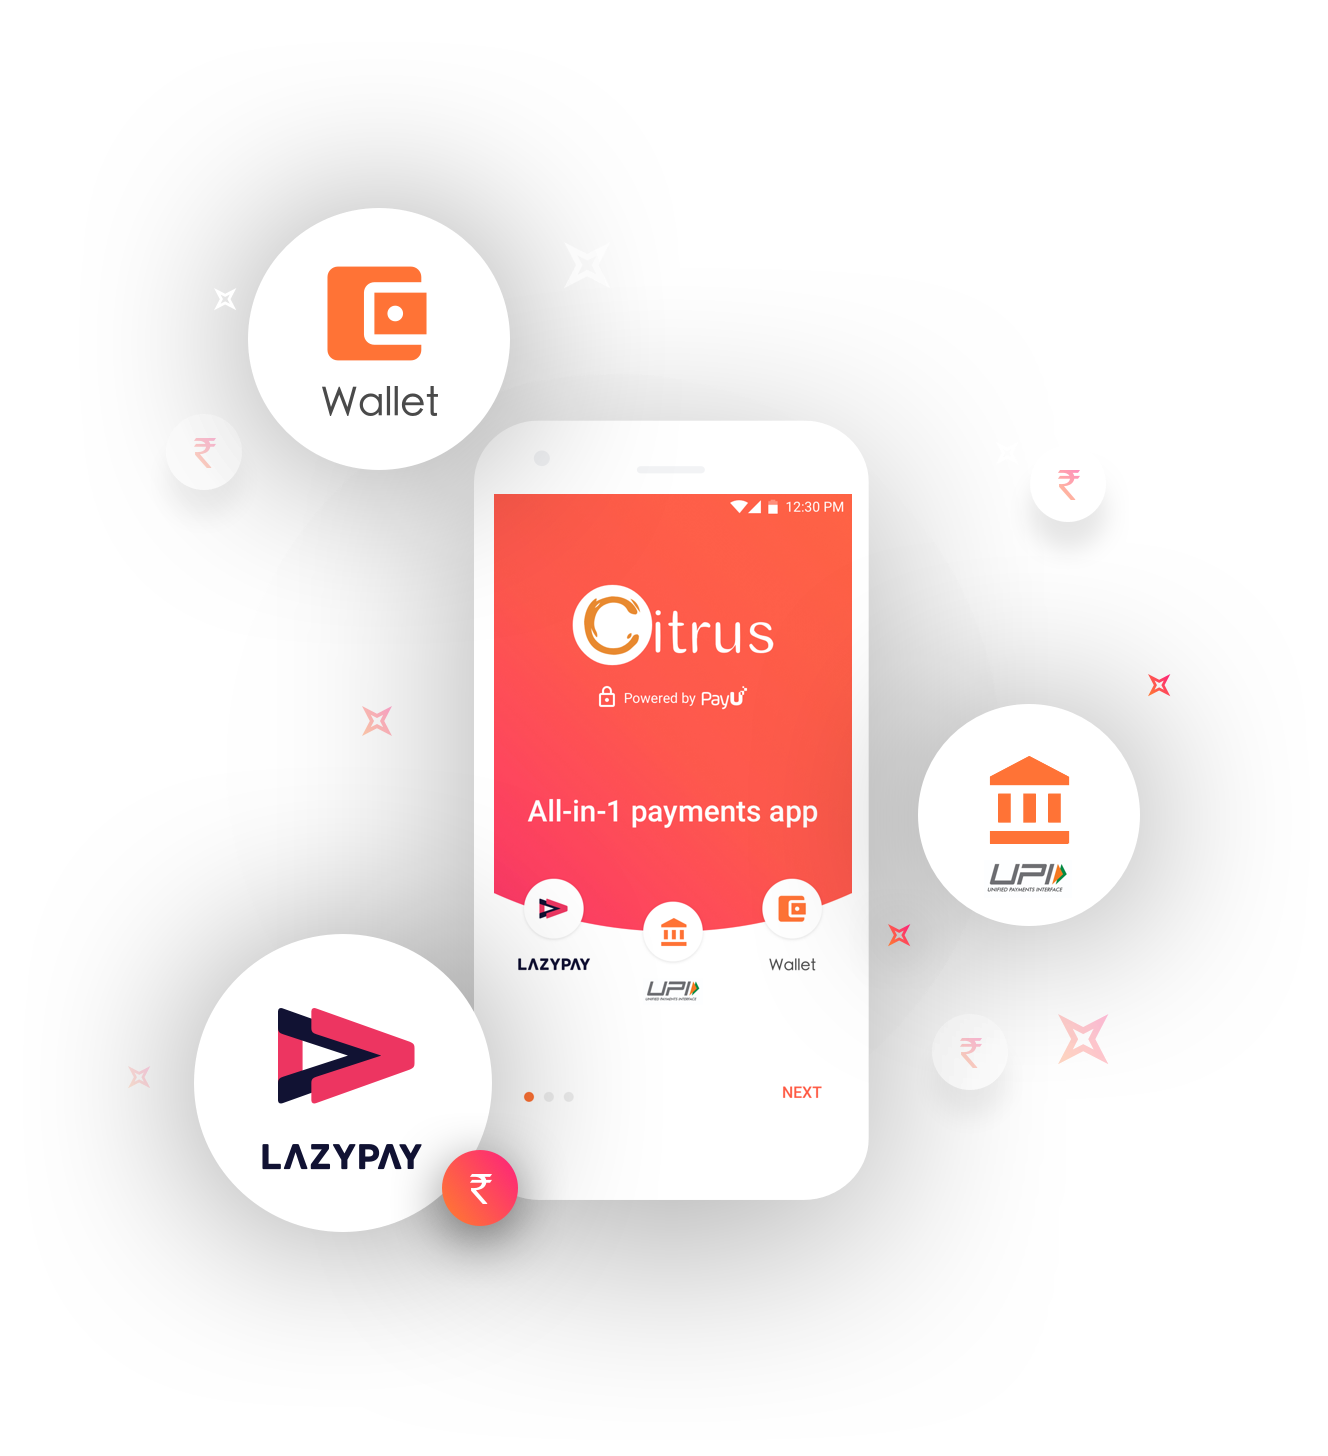 All in One Payments App by PayU